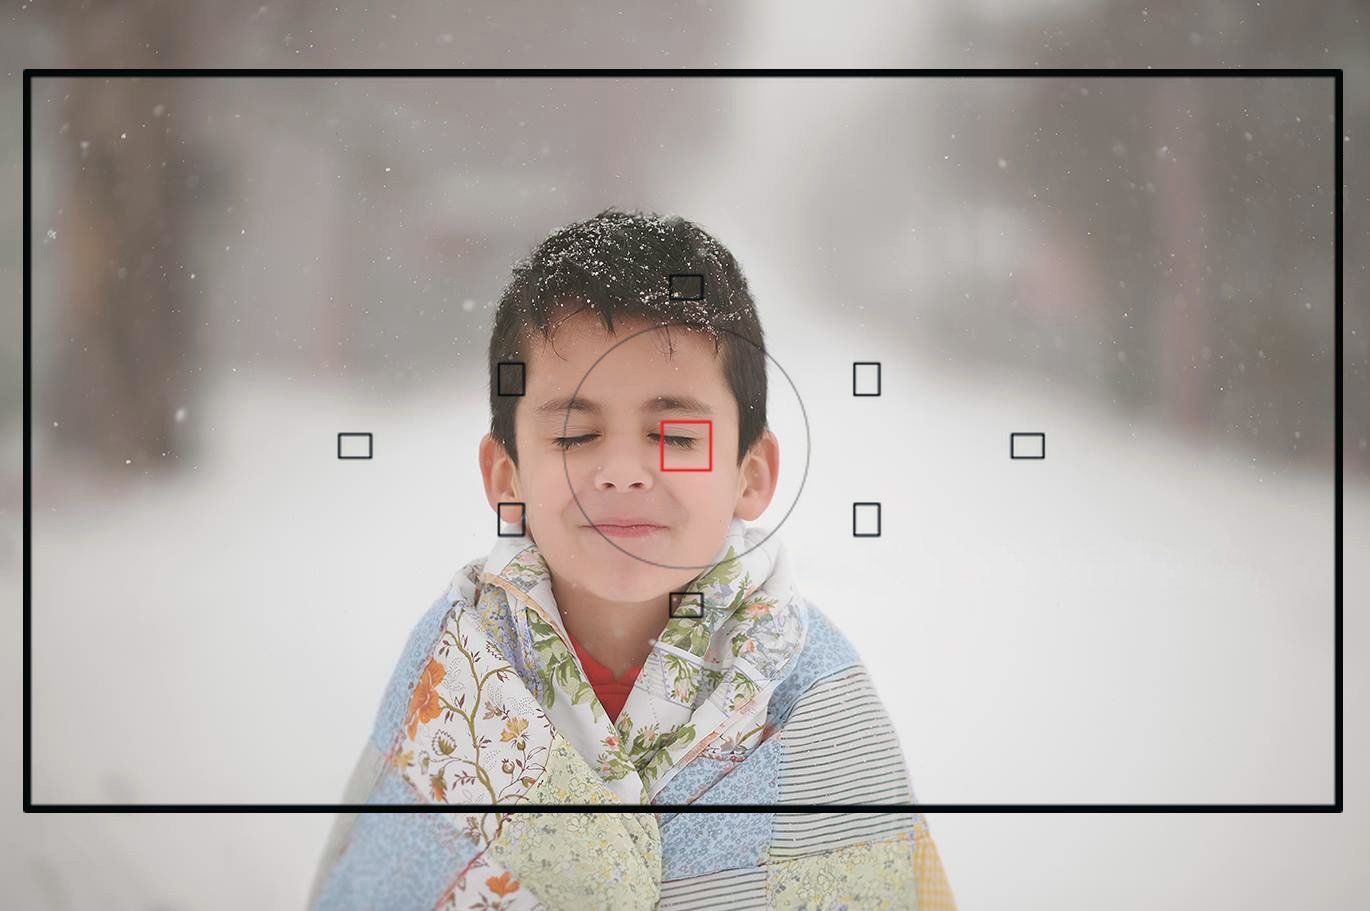 How To Get Sharper Images Fix Blurry Pictures Photoshop Actions Overlays Photo Editing Photoshop